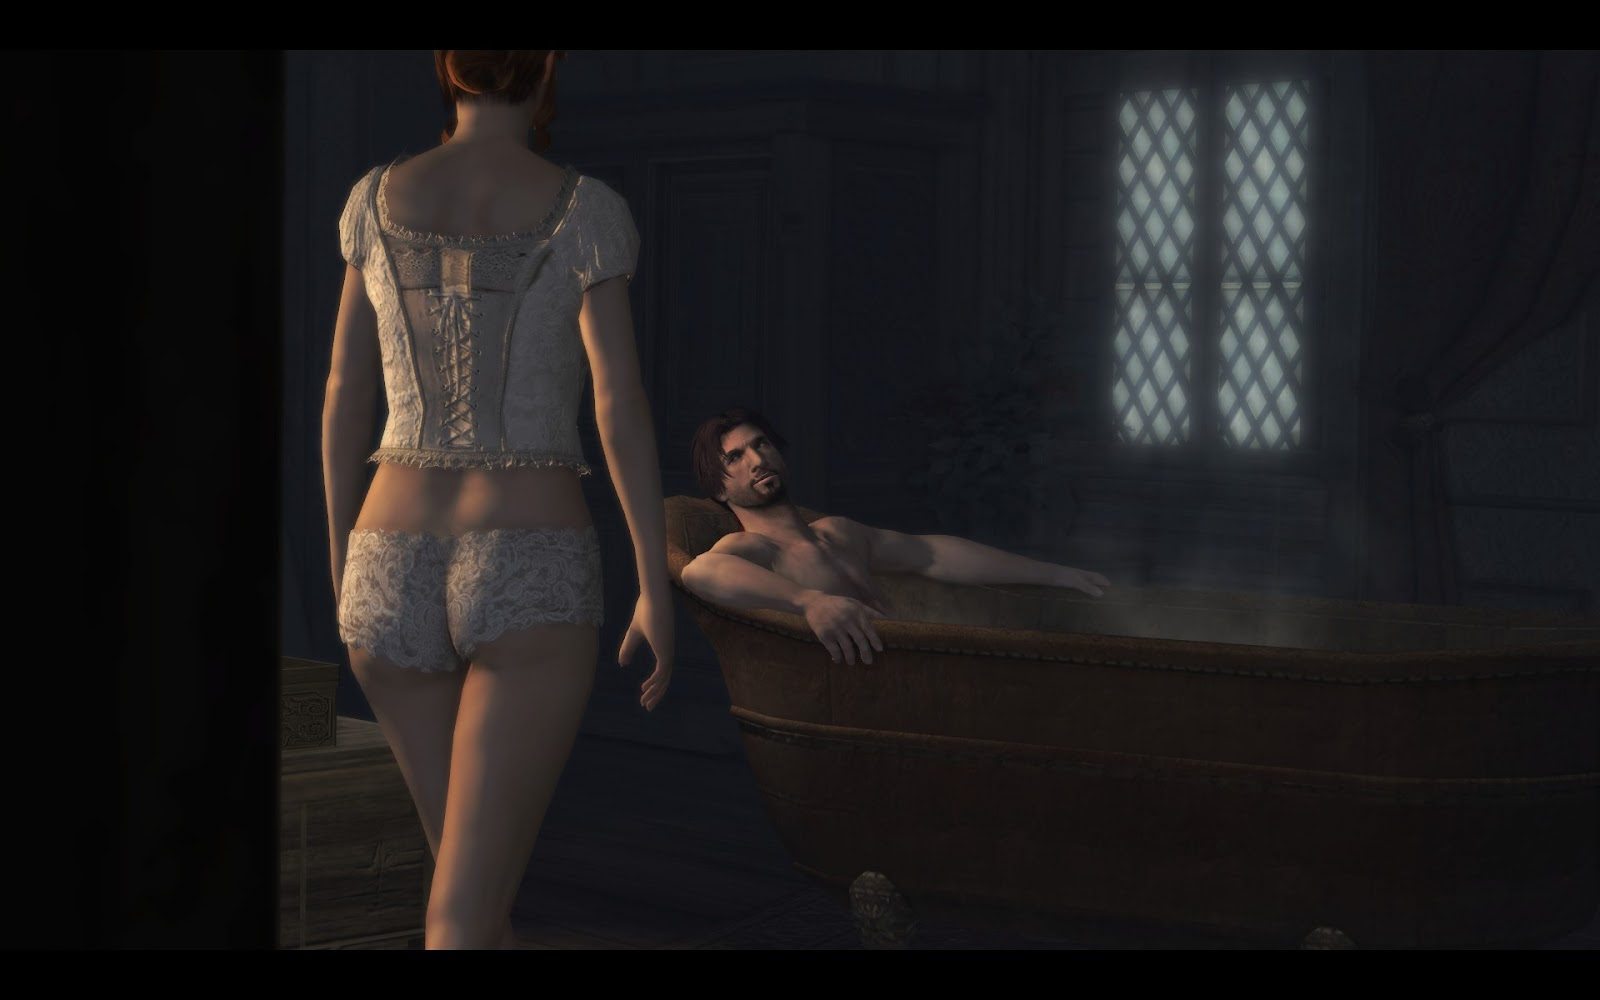 Ezio sex with christina softcore pictures